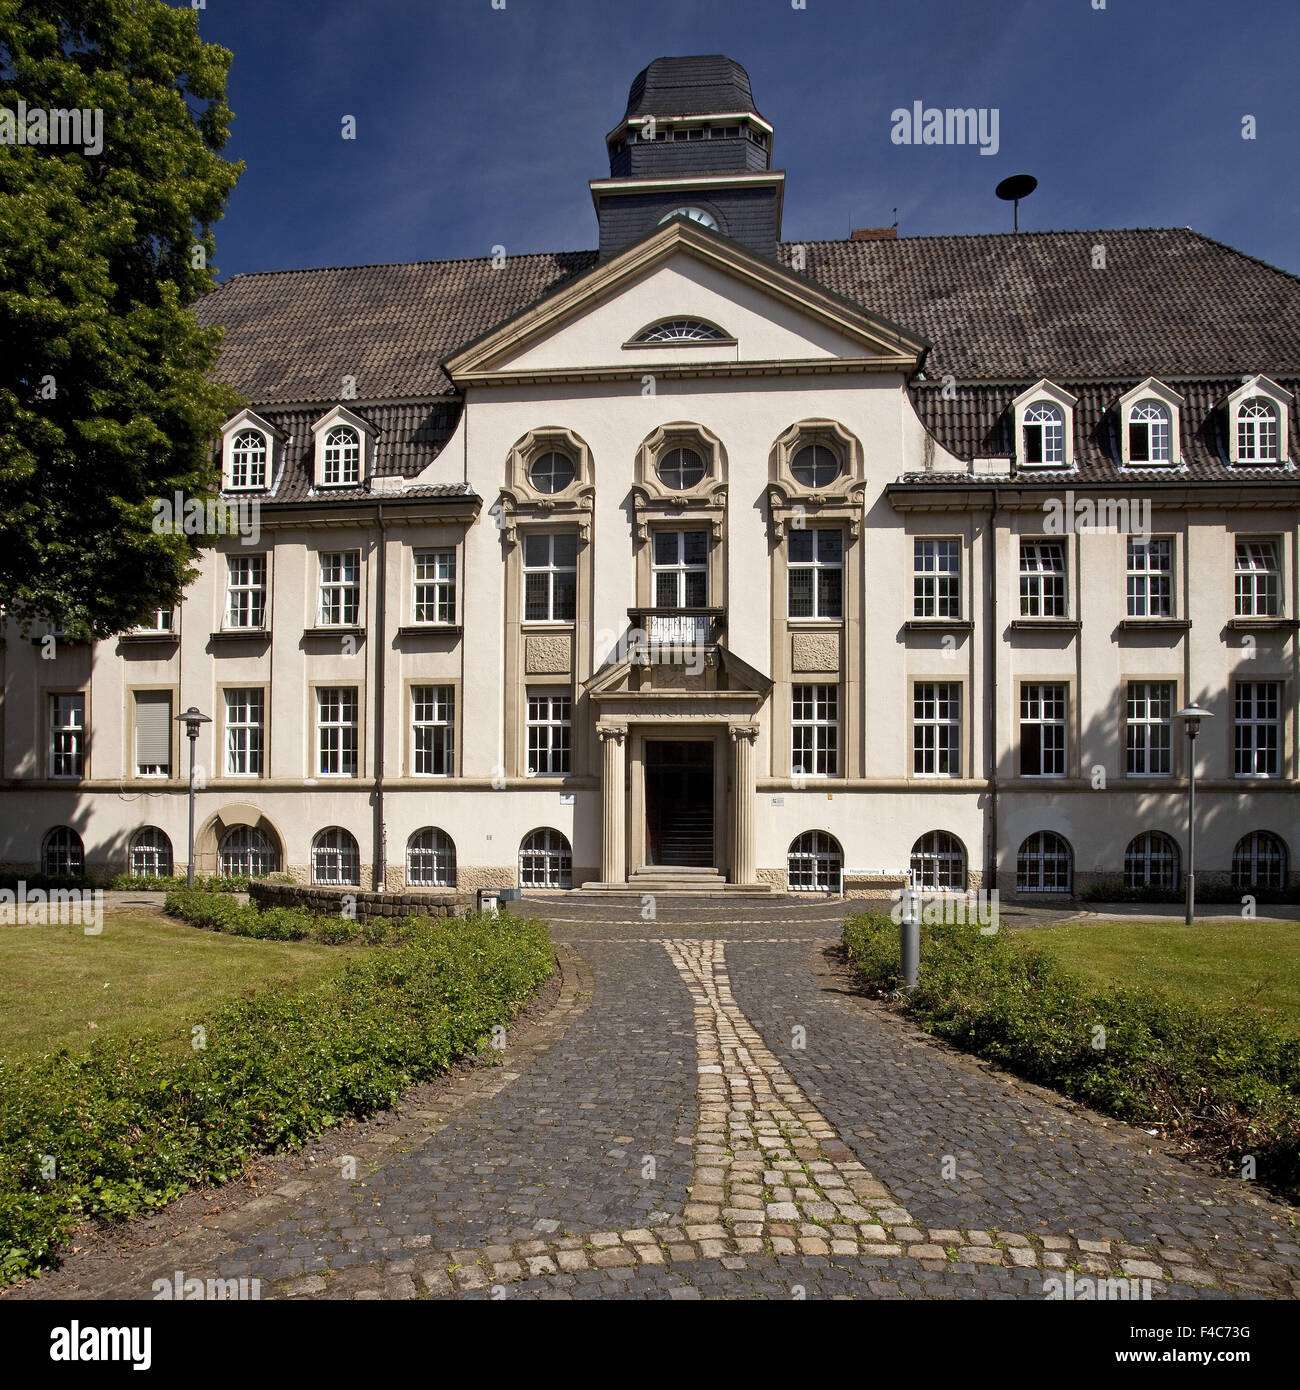 Official home, Selm, Germany - Stock Image